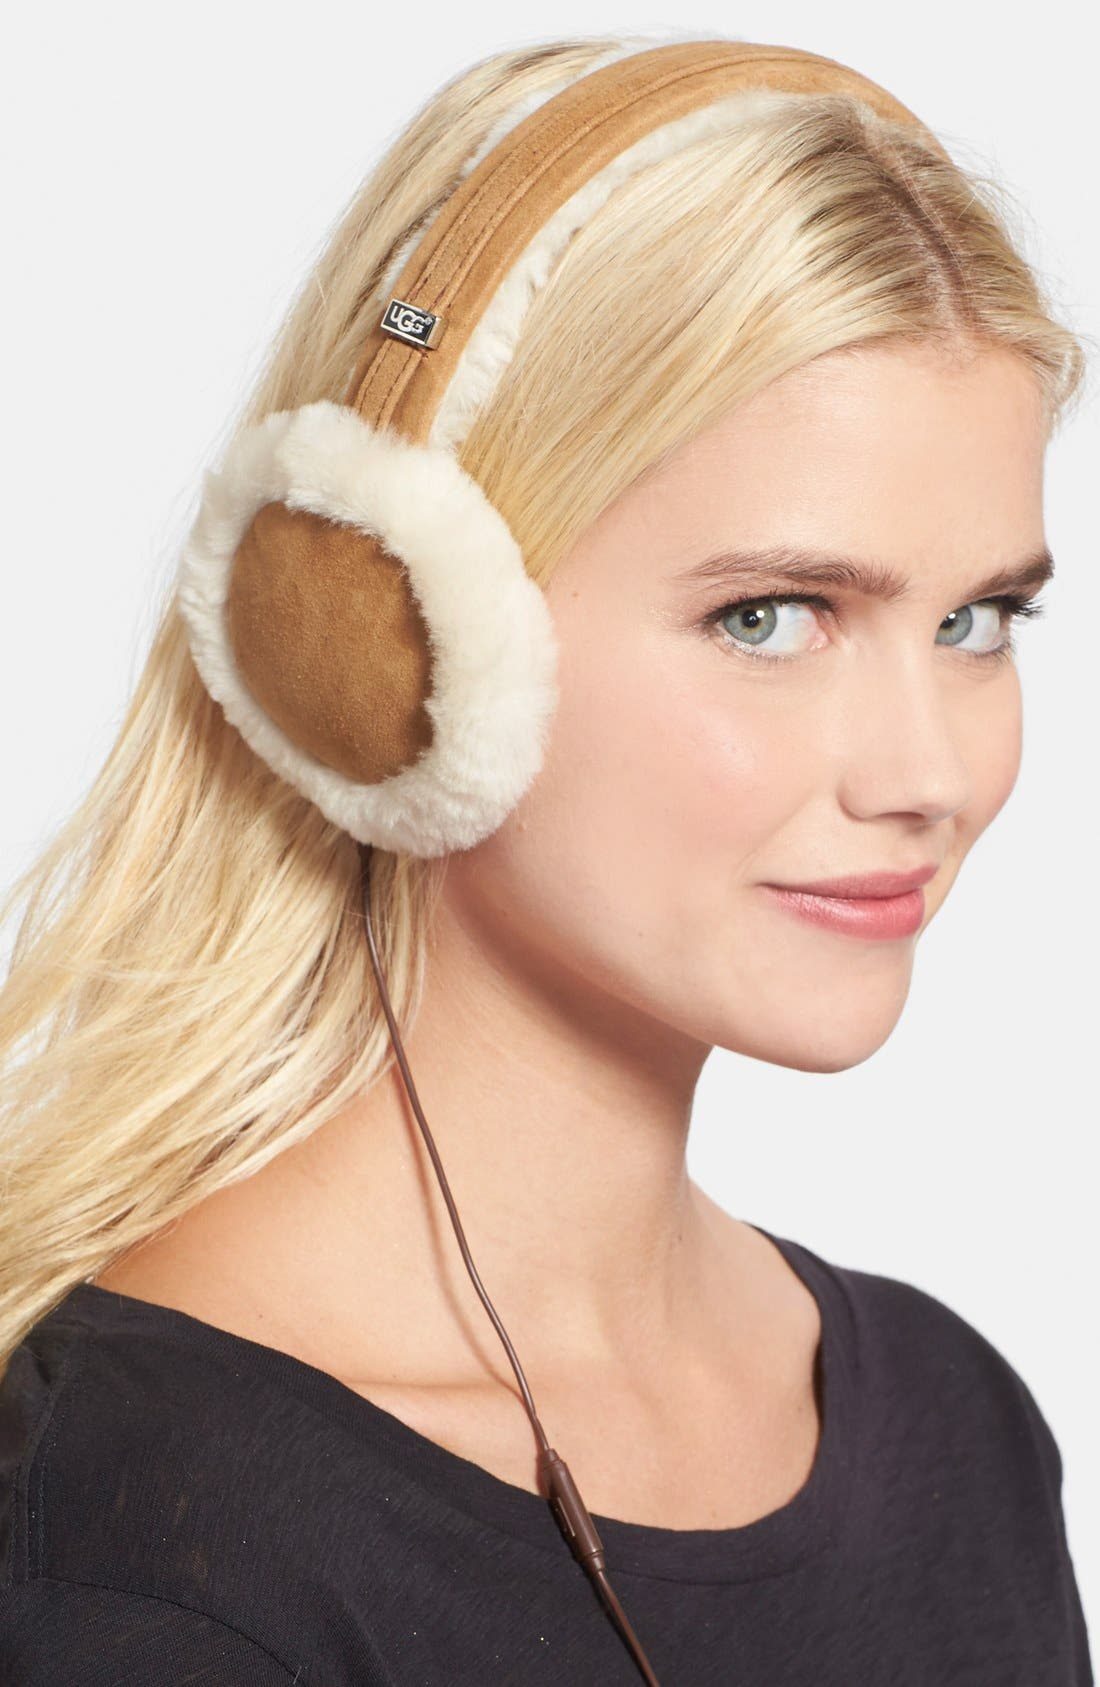 Main Image - UGG® Australia 'Classic' Genuine Shearling Headphone Earmuffs